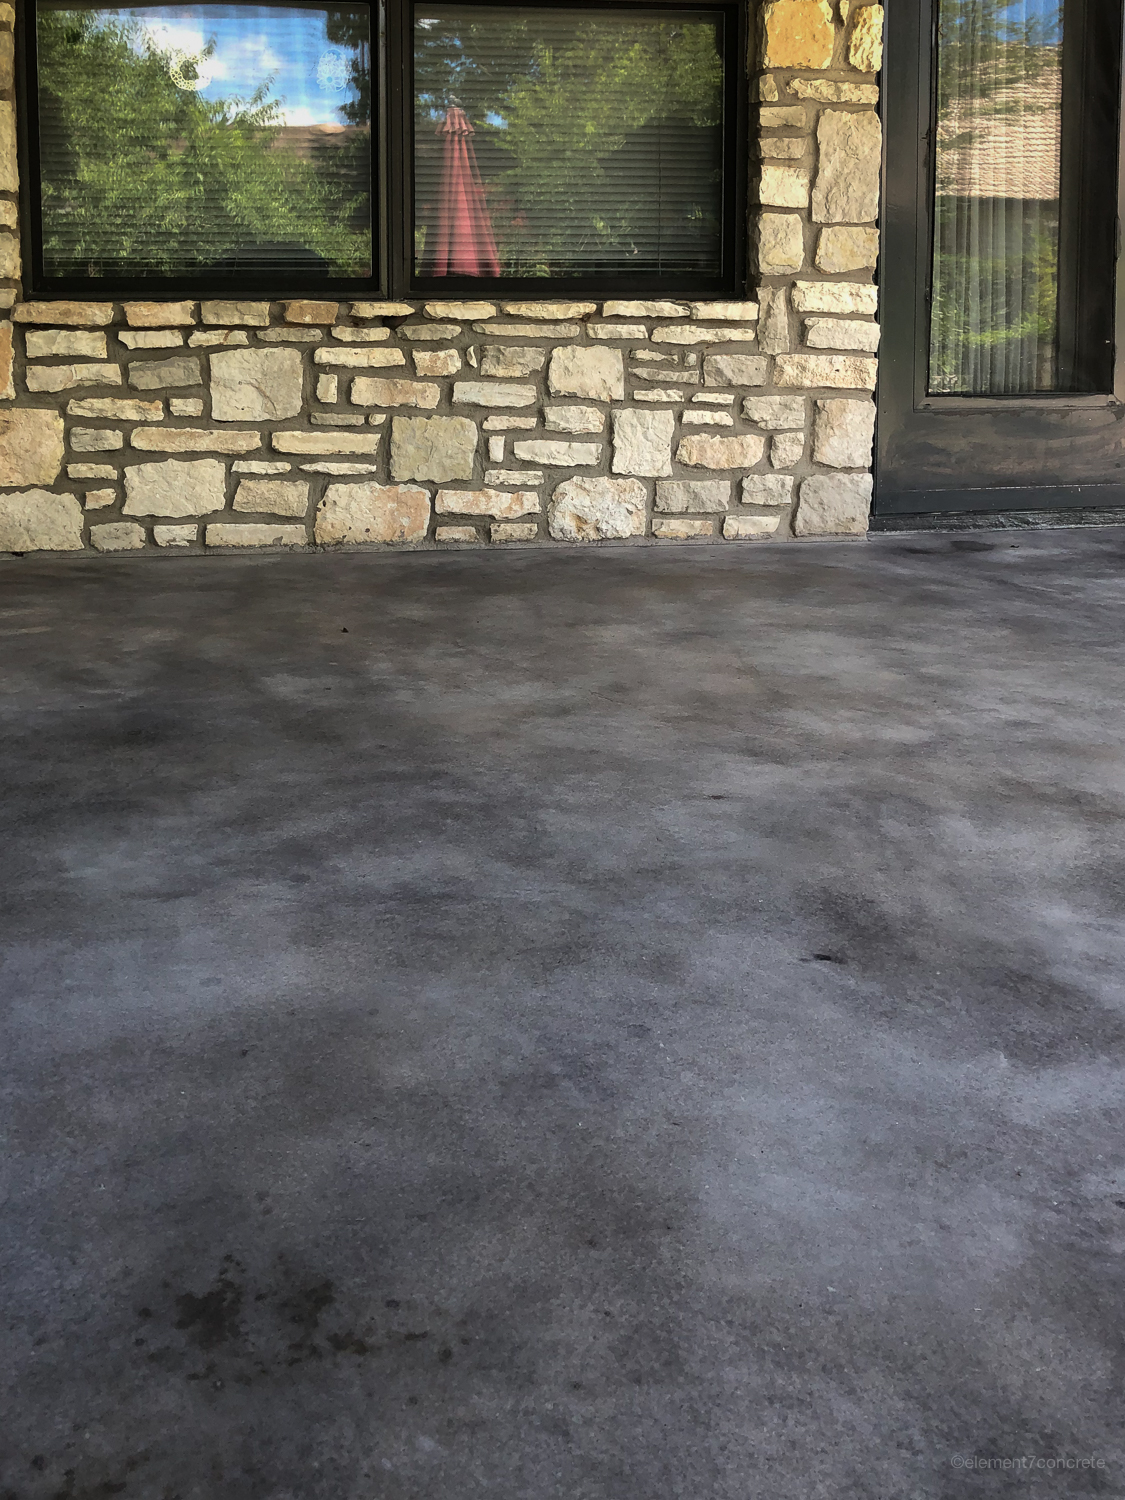 Grey + Grippy - We stained this with a 2-unit loading of grey penetrating stain. We chemically hardened the concrete and left it honed coarsely rather than polishing it. We sealed it with a semi-penetrating sealer.